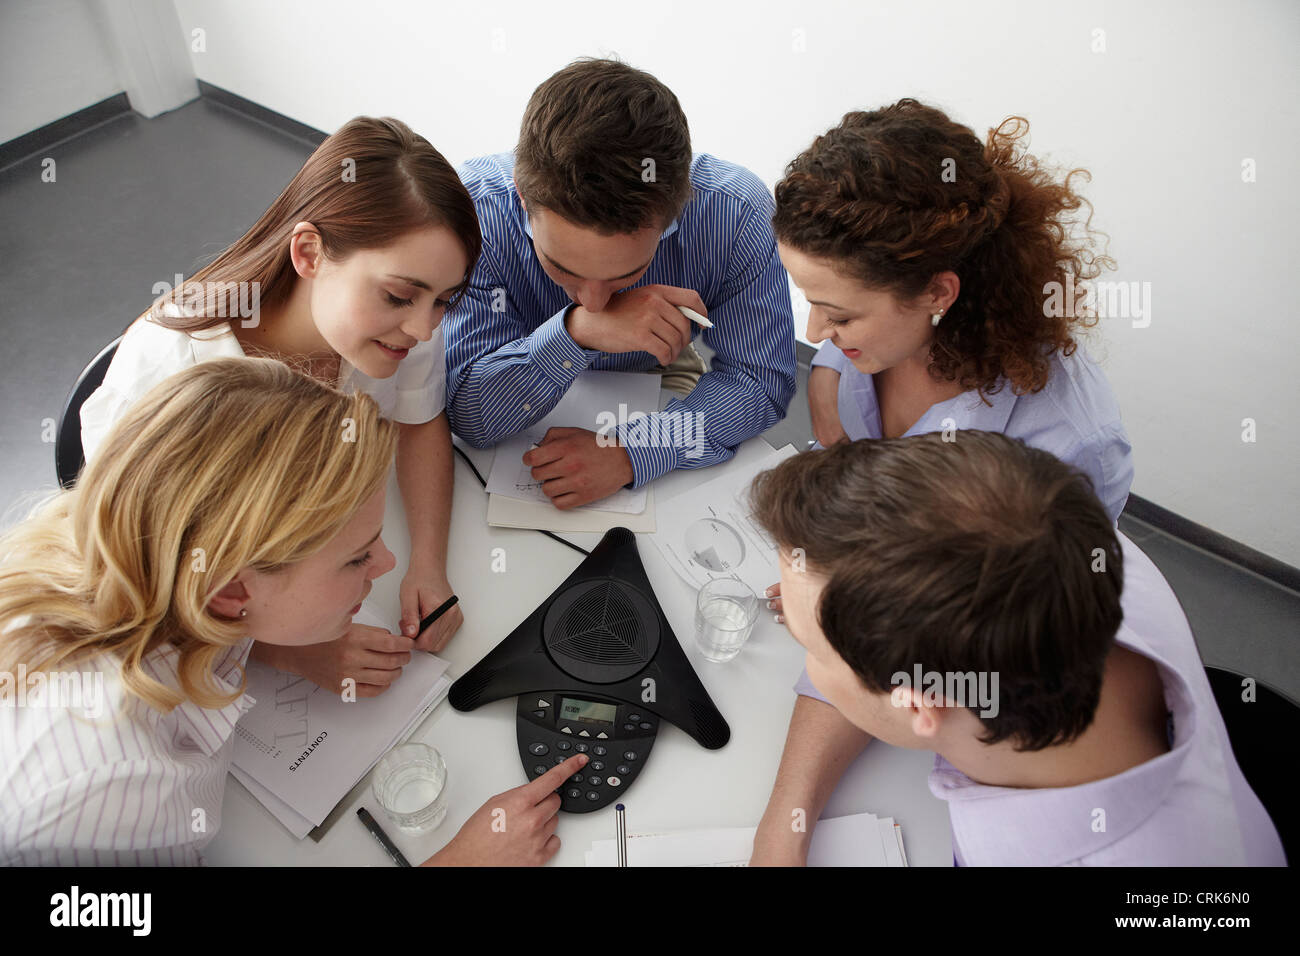 Business people in conference call - Stock Image